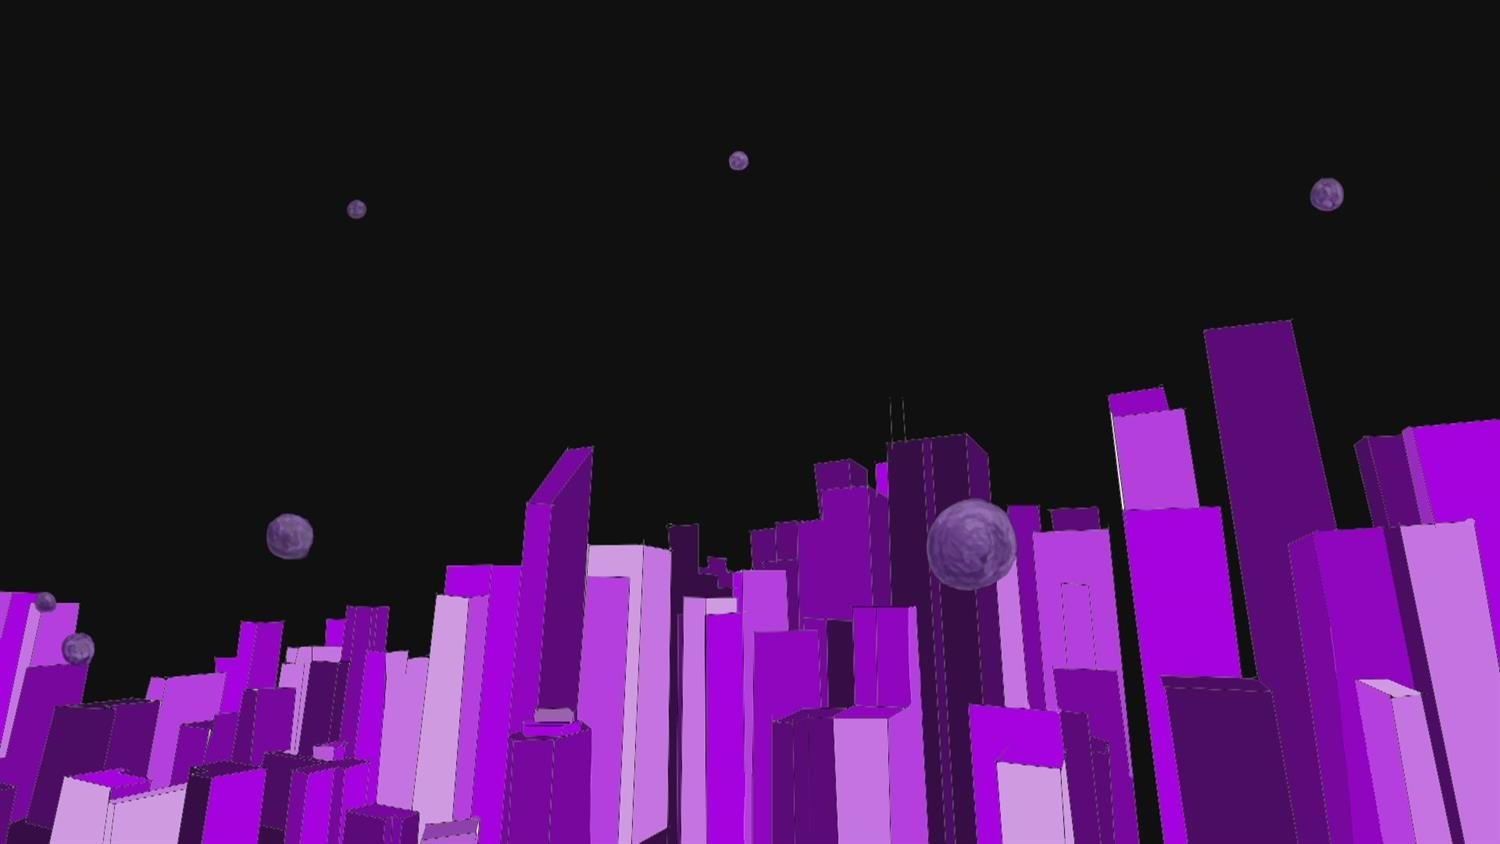 Meteors Destroying a City